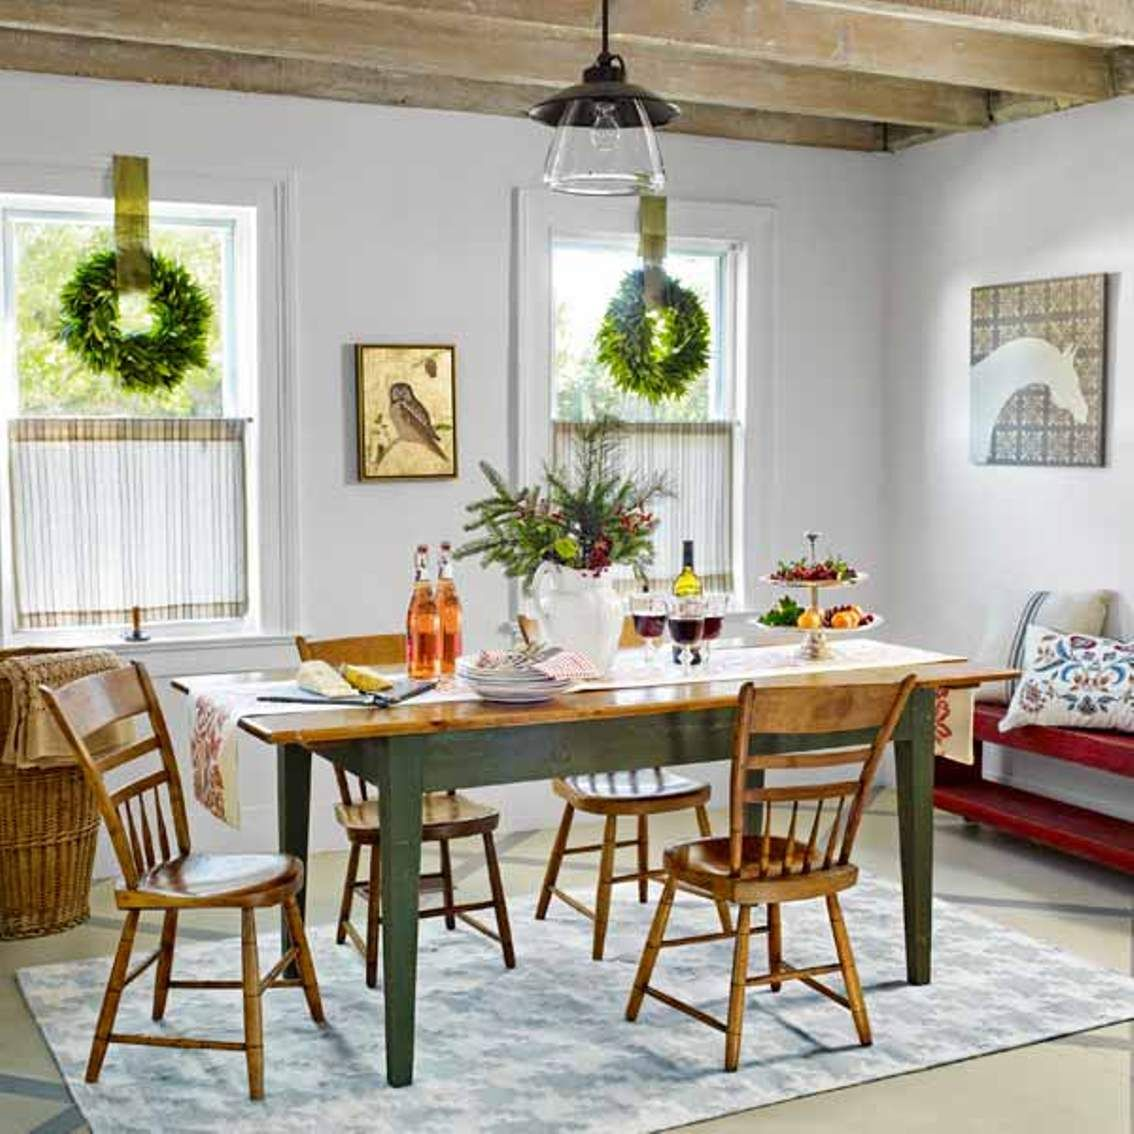 Dining Room Captivating Farmhouse Style Festive With Glass